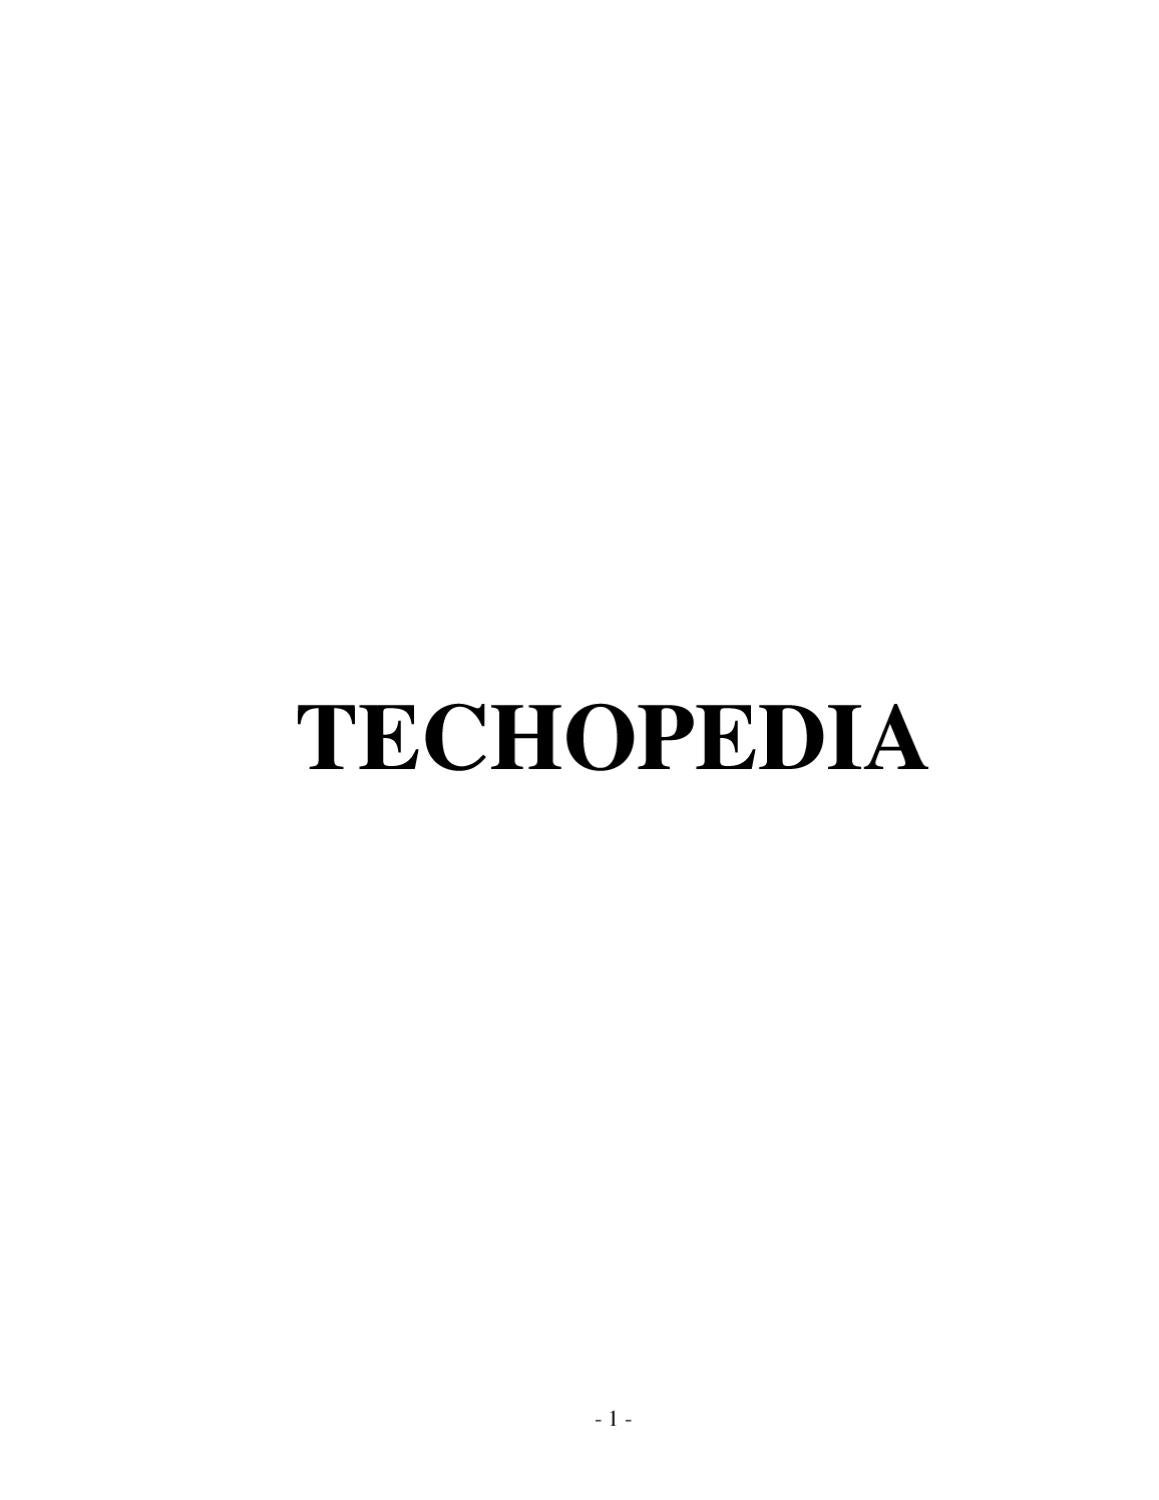 Techopedia By Thottarayaswamy Alagiriswamy Issuu This Shows Top In Vivo Flexible Large Scale Integrated Circuits Lsi